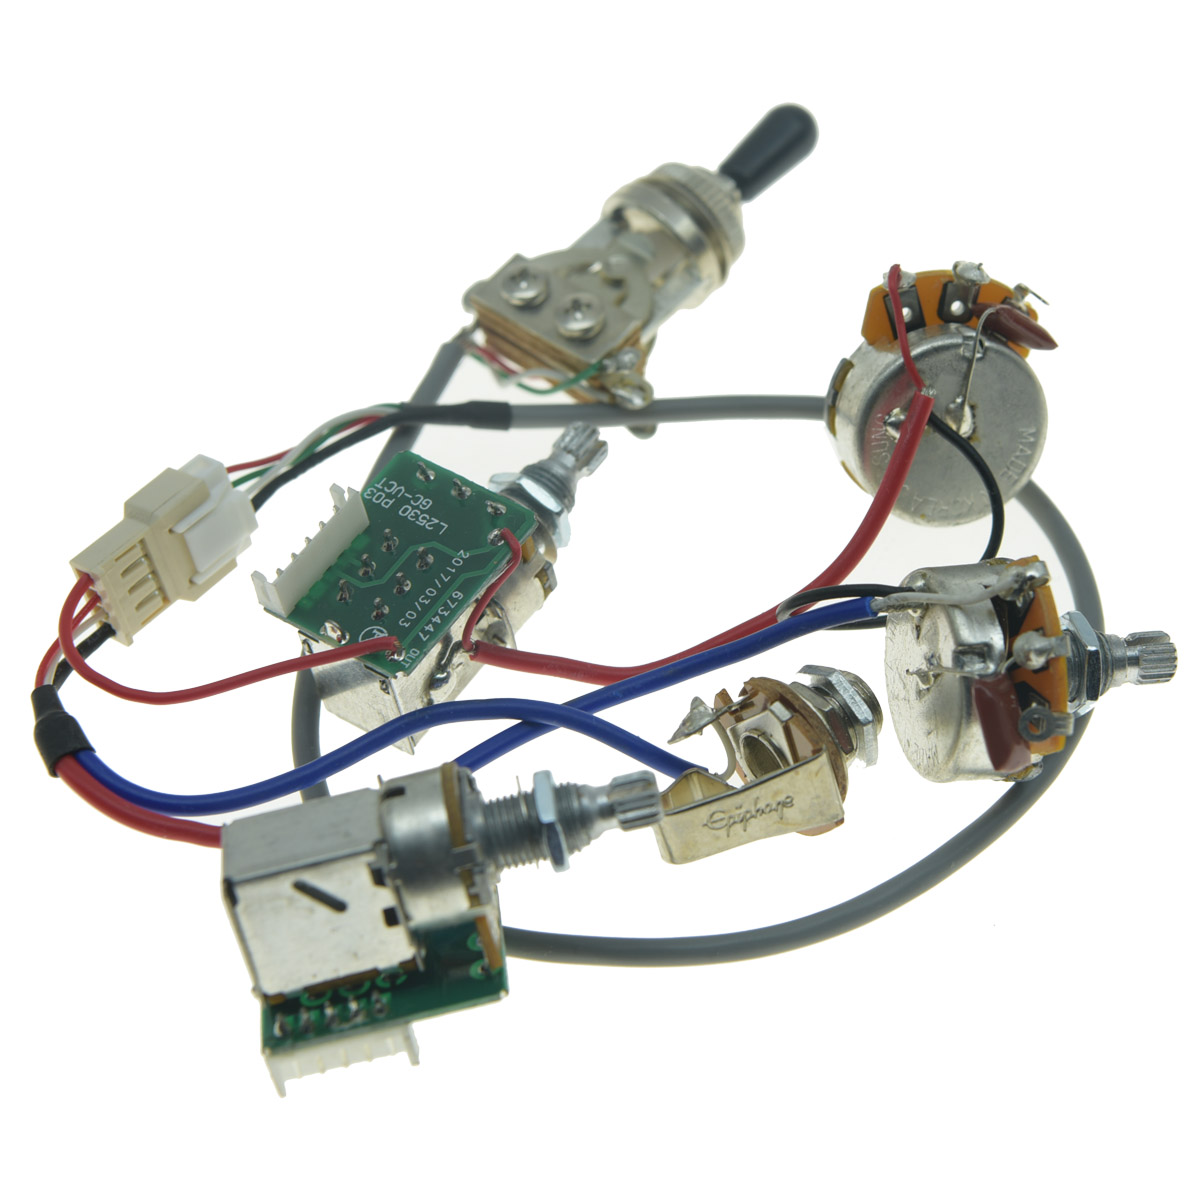 hight resolution of original lp guitar pickup pro wiring harness quick connect for epiphone les paul wiring harness upgrade